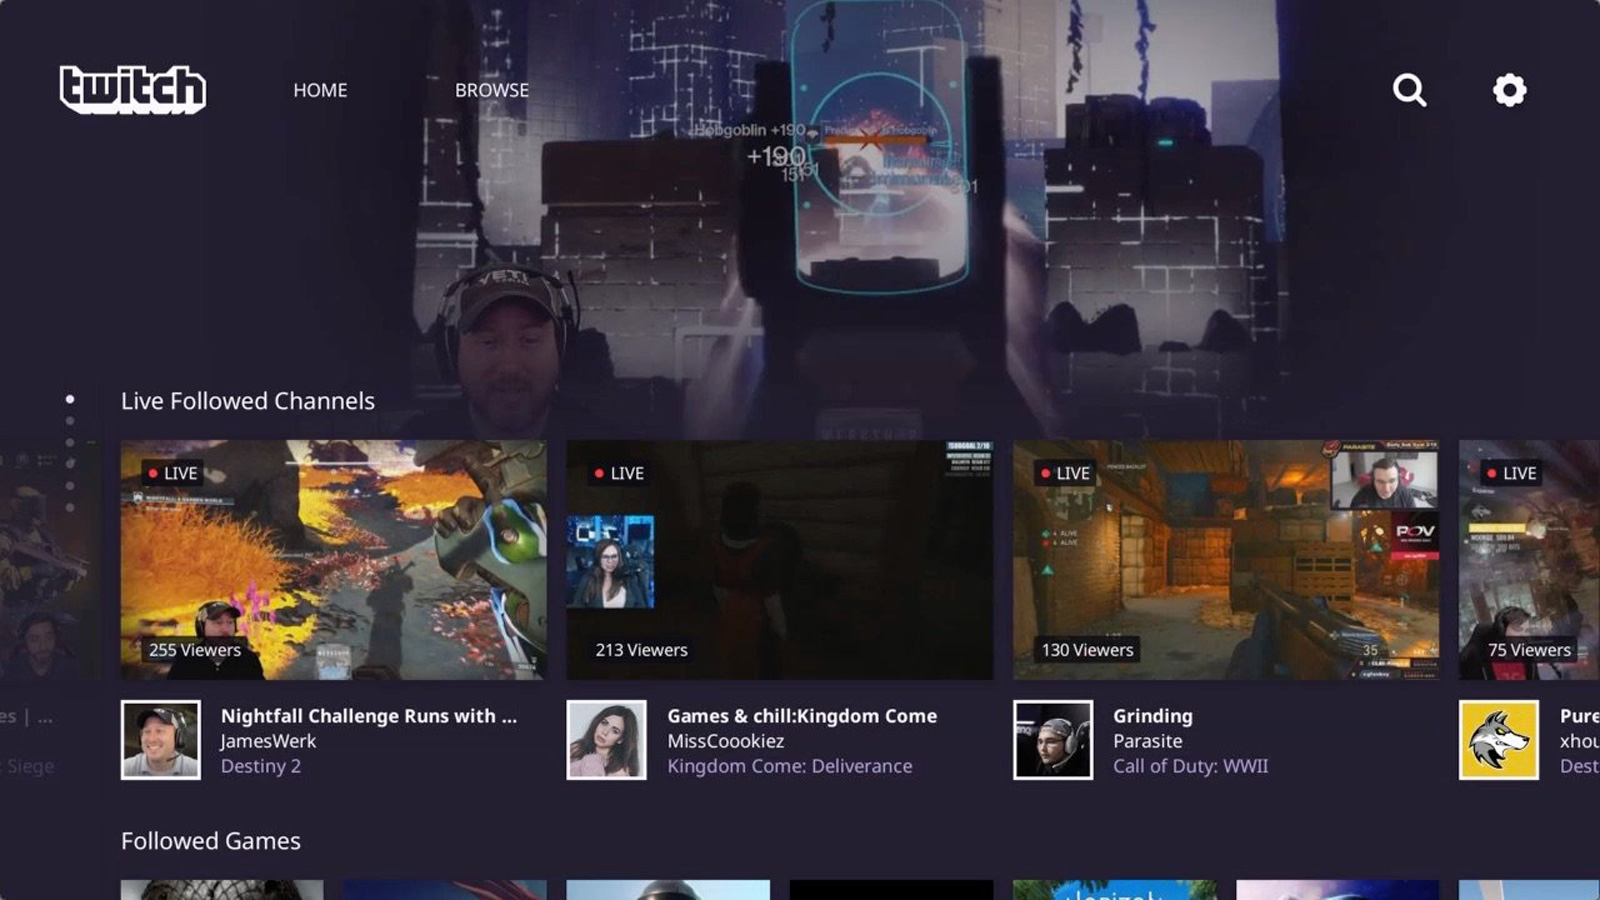 Twitch app for PS4 gets a much-needed interface makeover | DeviceDaily.com